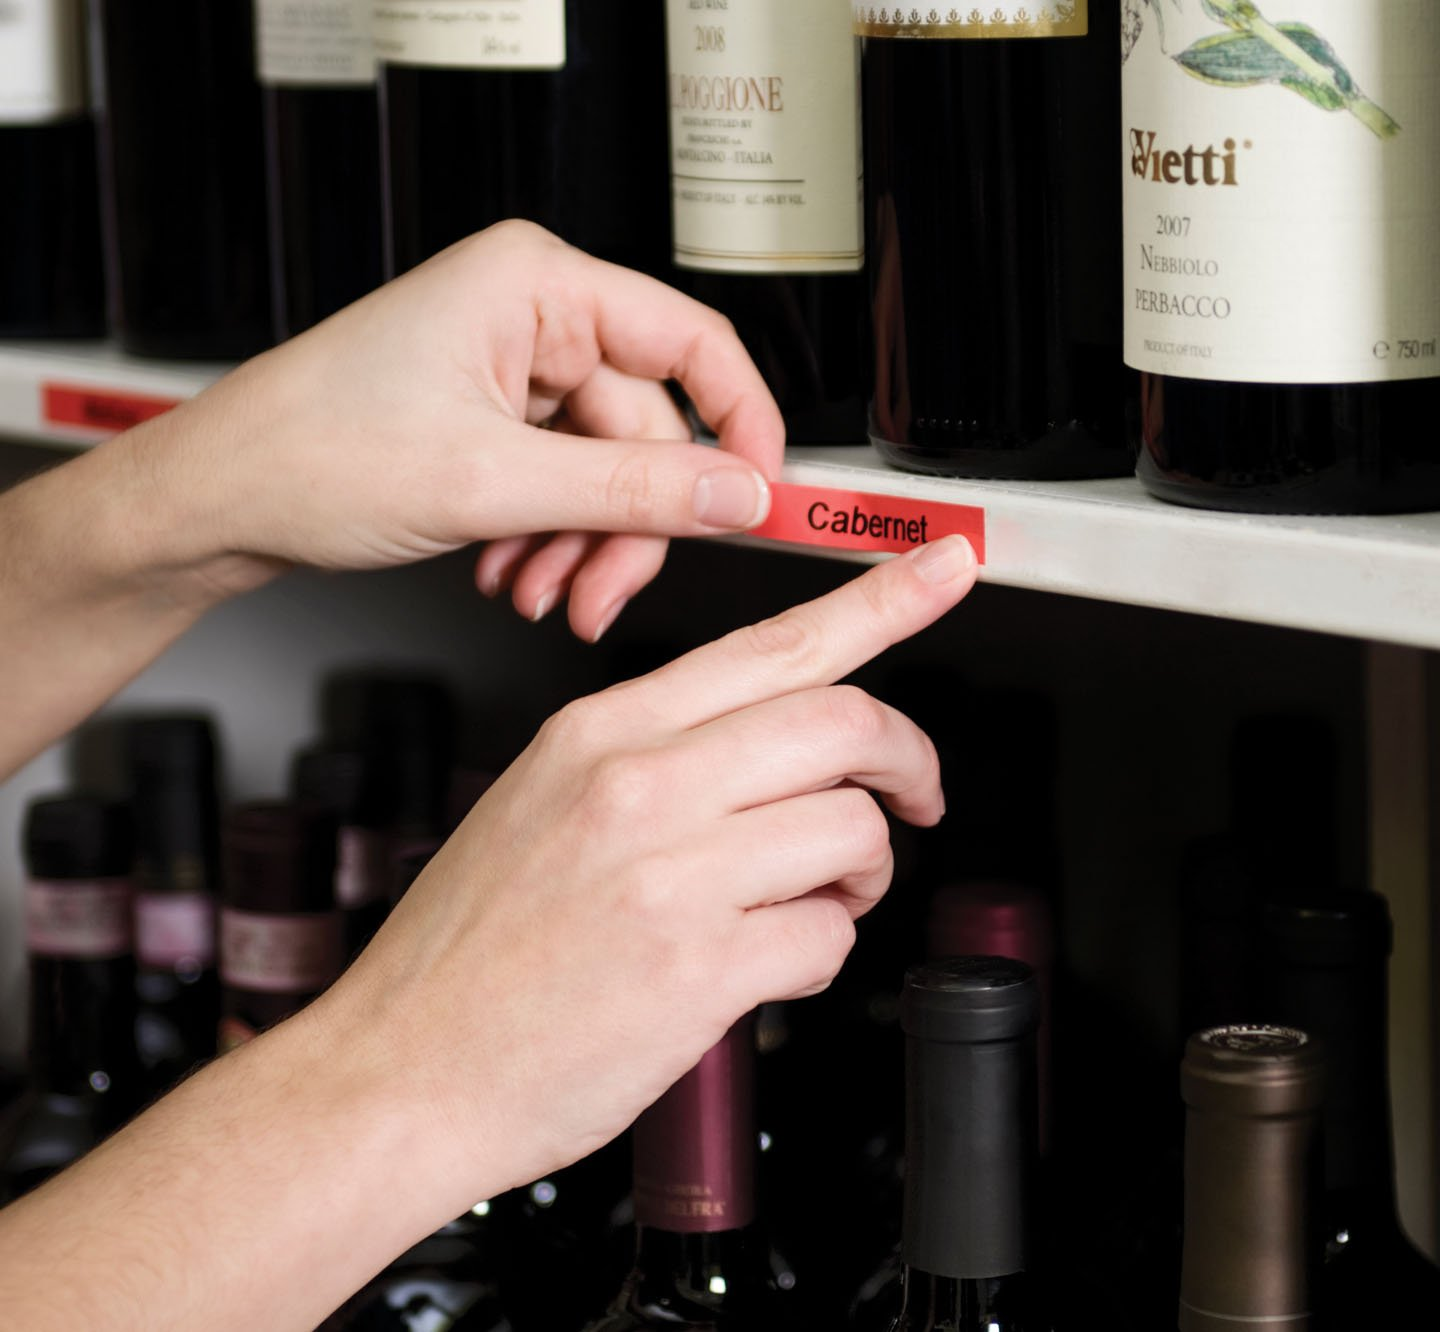 Hands placing a red label on a shelf of wine.